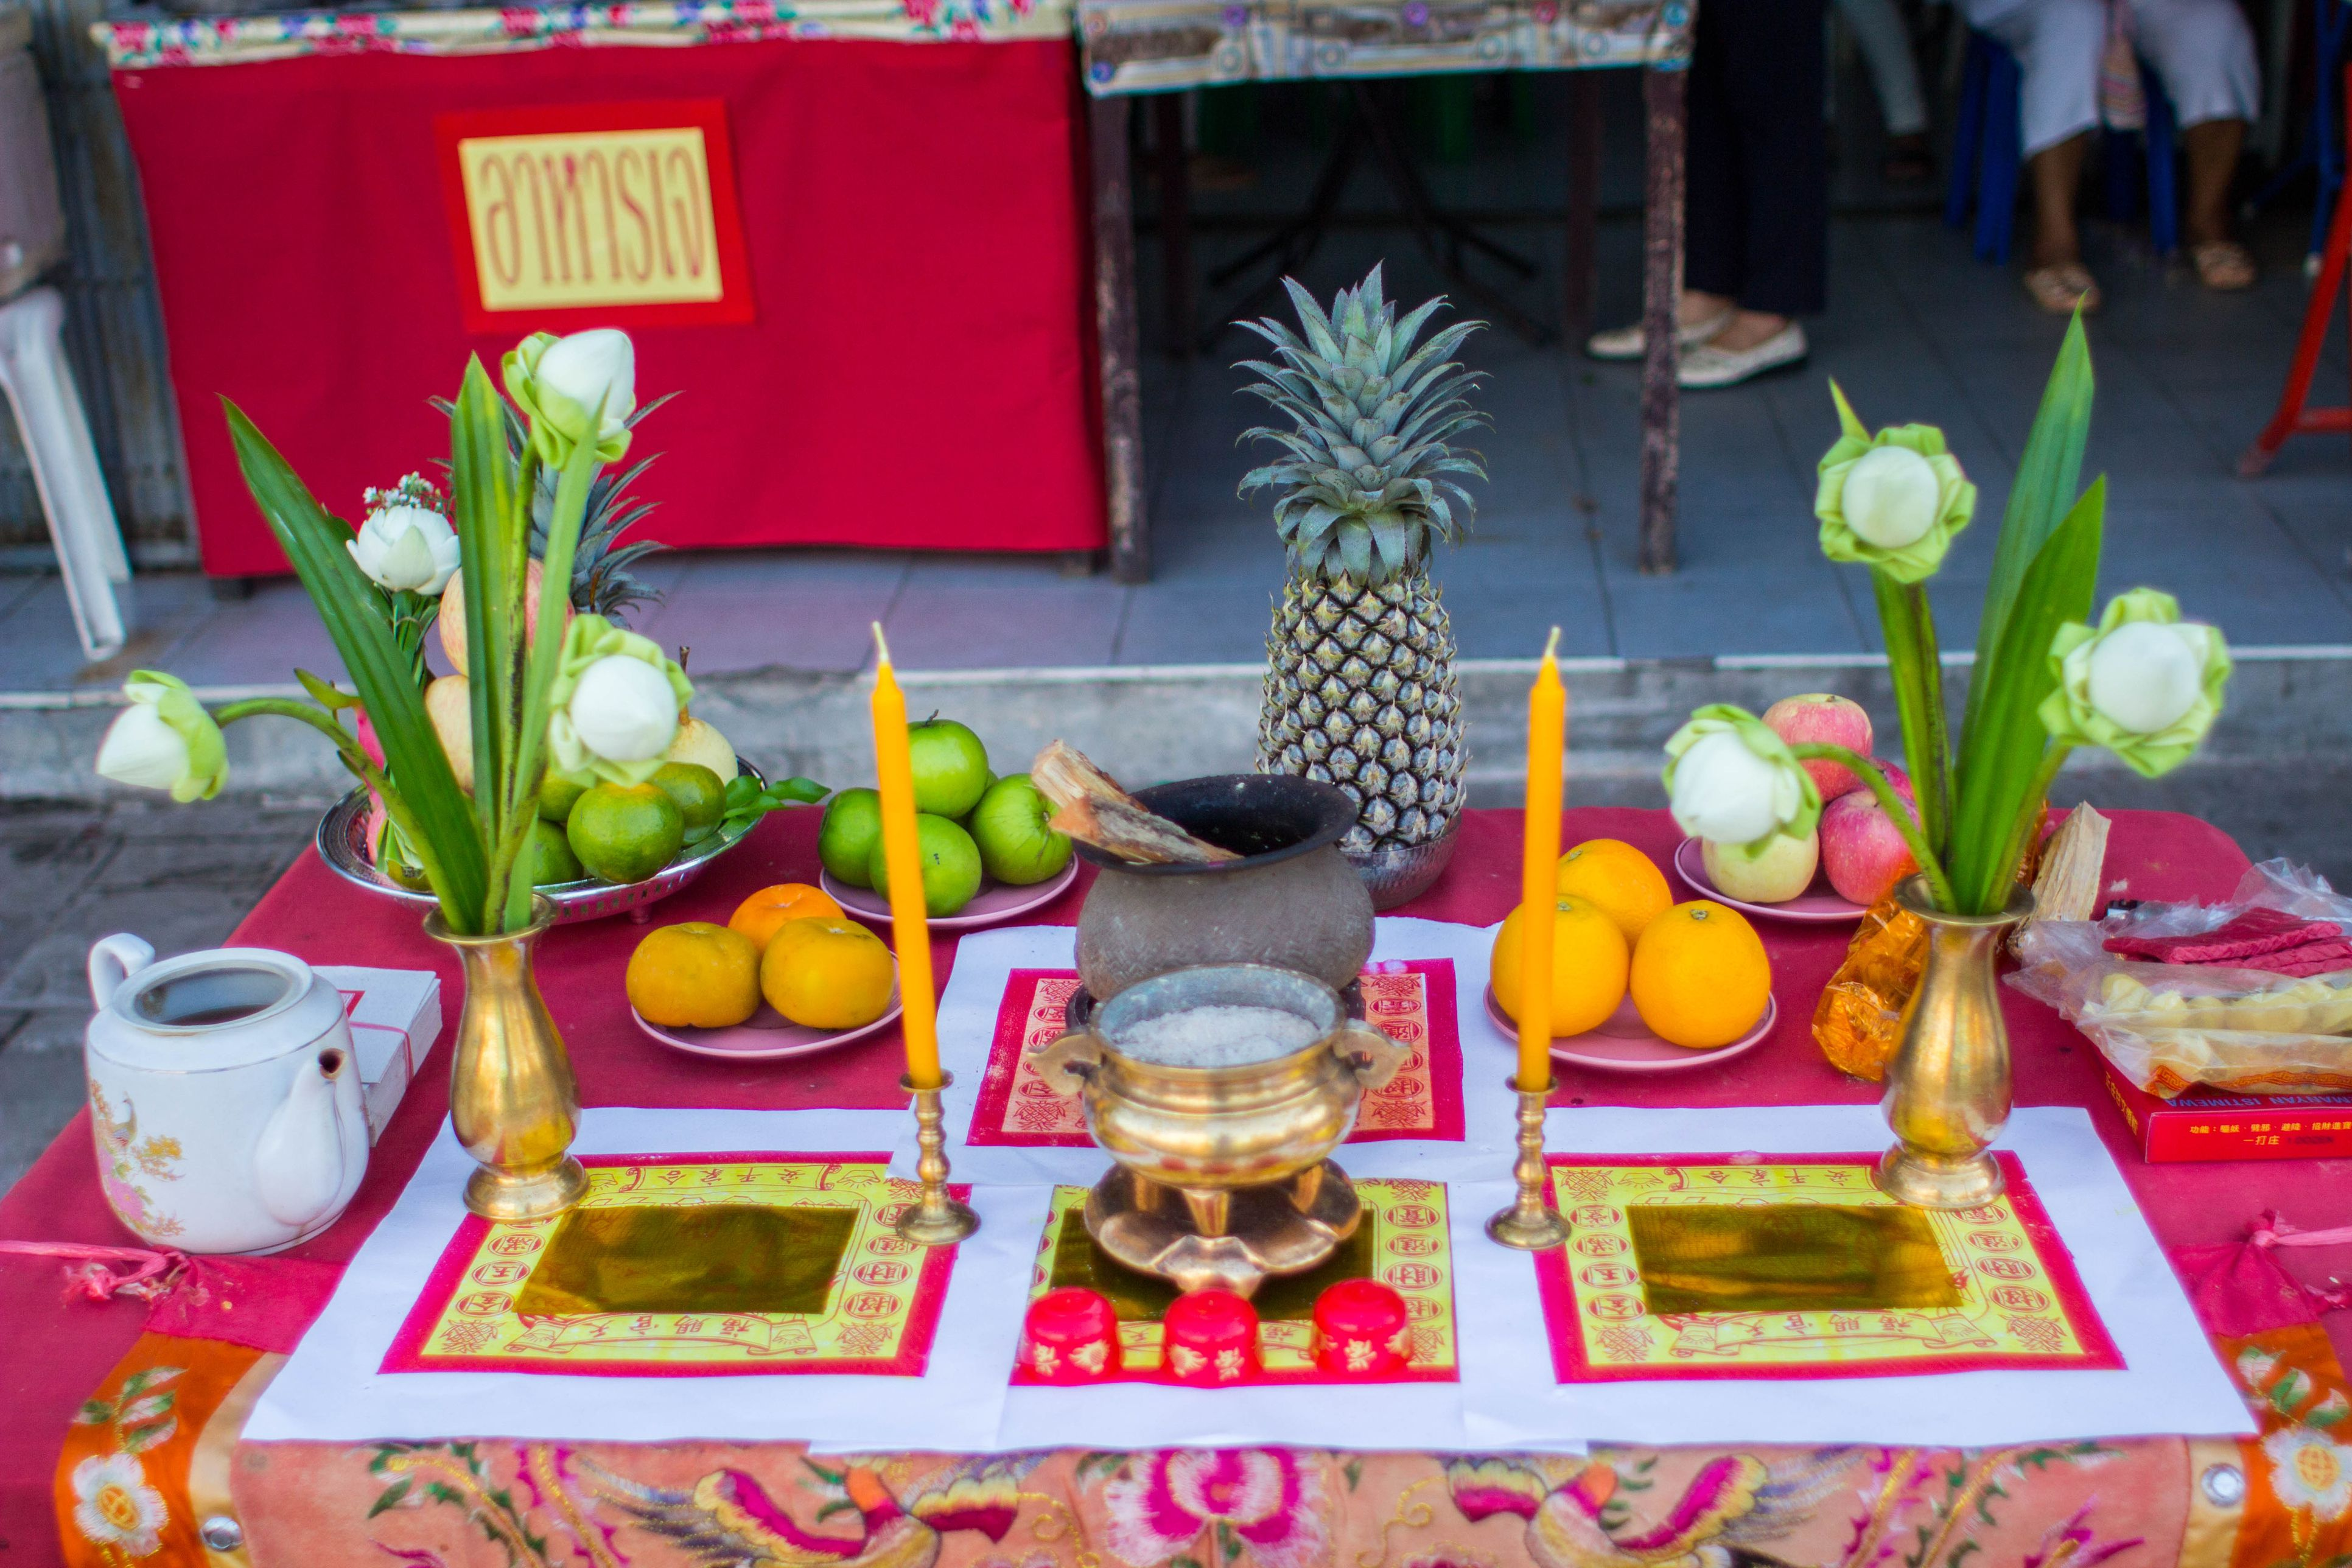 A table set for the Vegetarian Festival in Phuket, Thailand